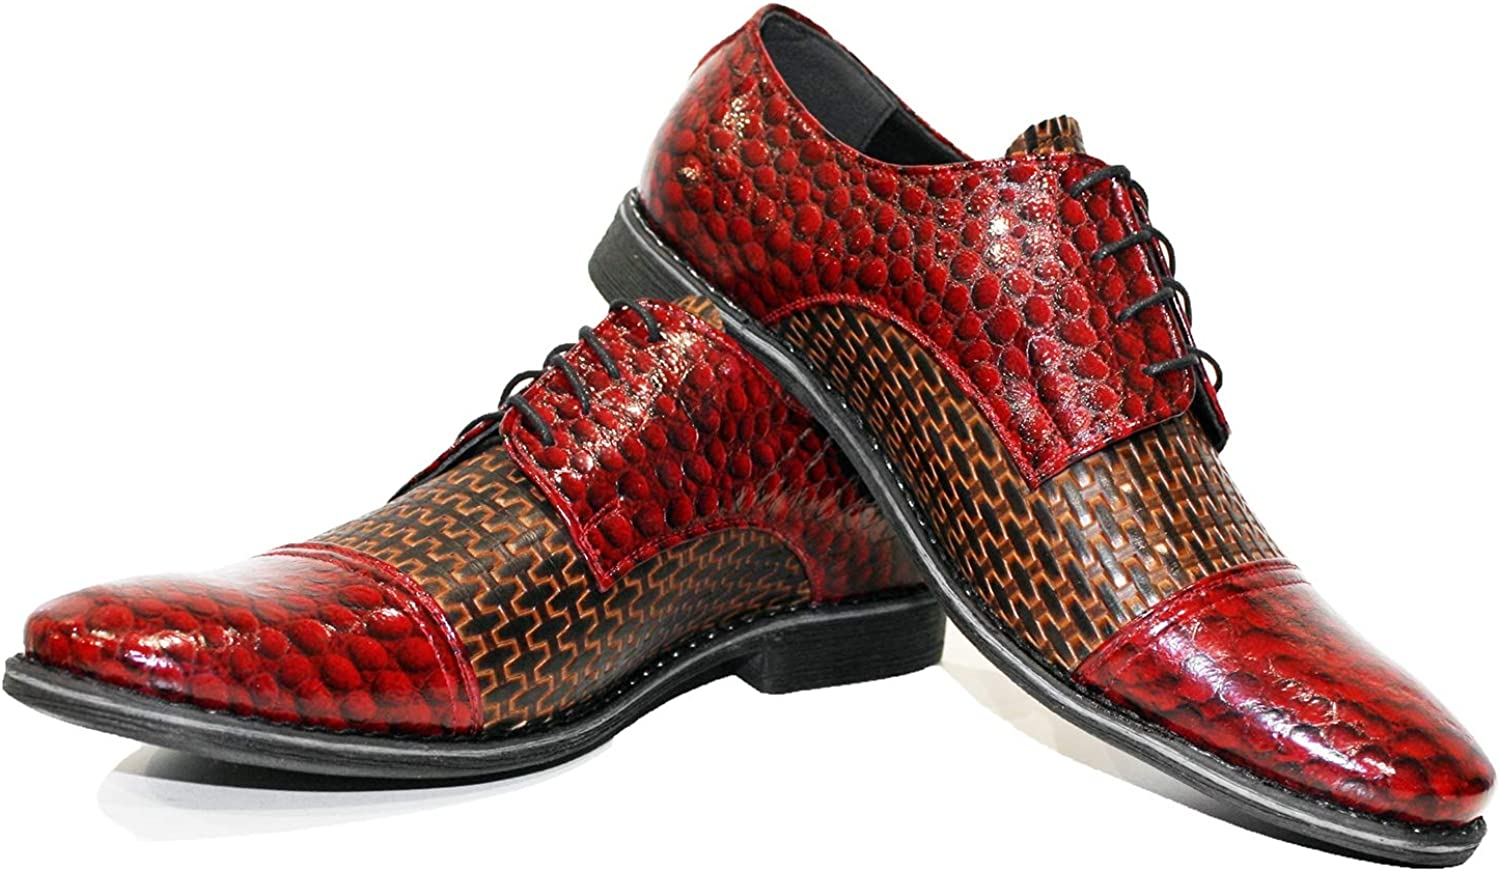 Modello Ramonet - Handmade Italian Leather Mens color Red Oxfords Dress shoes - Cowhide Embossed Leather - Lace-Up